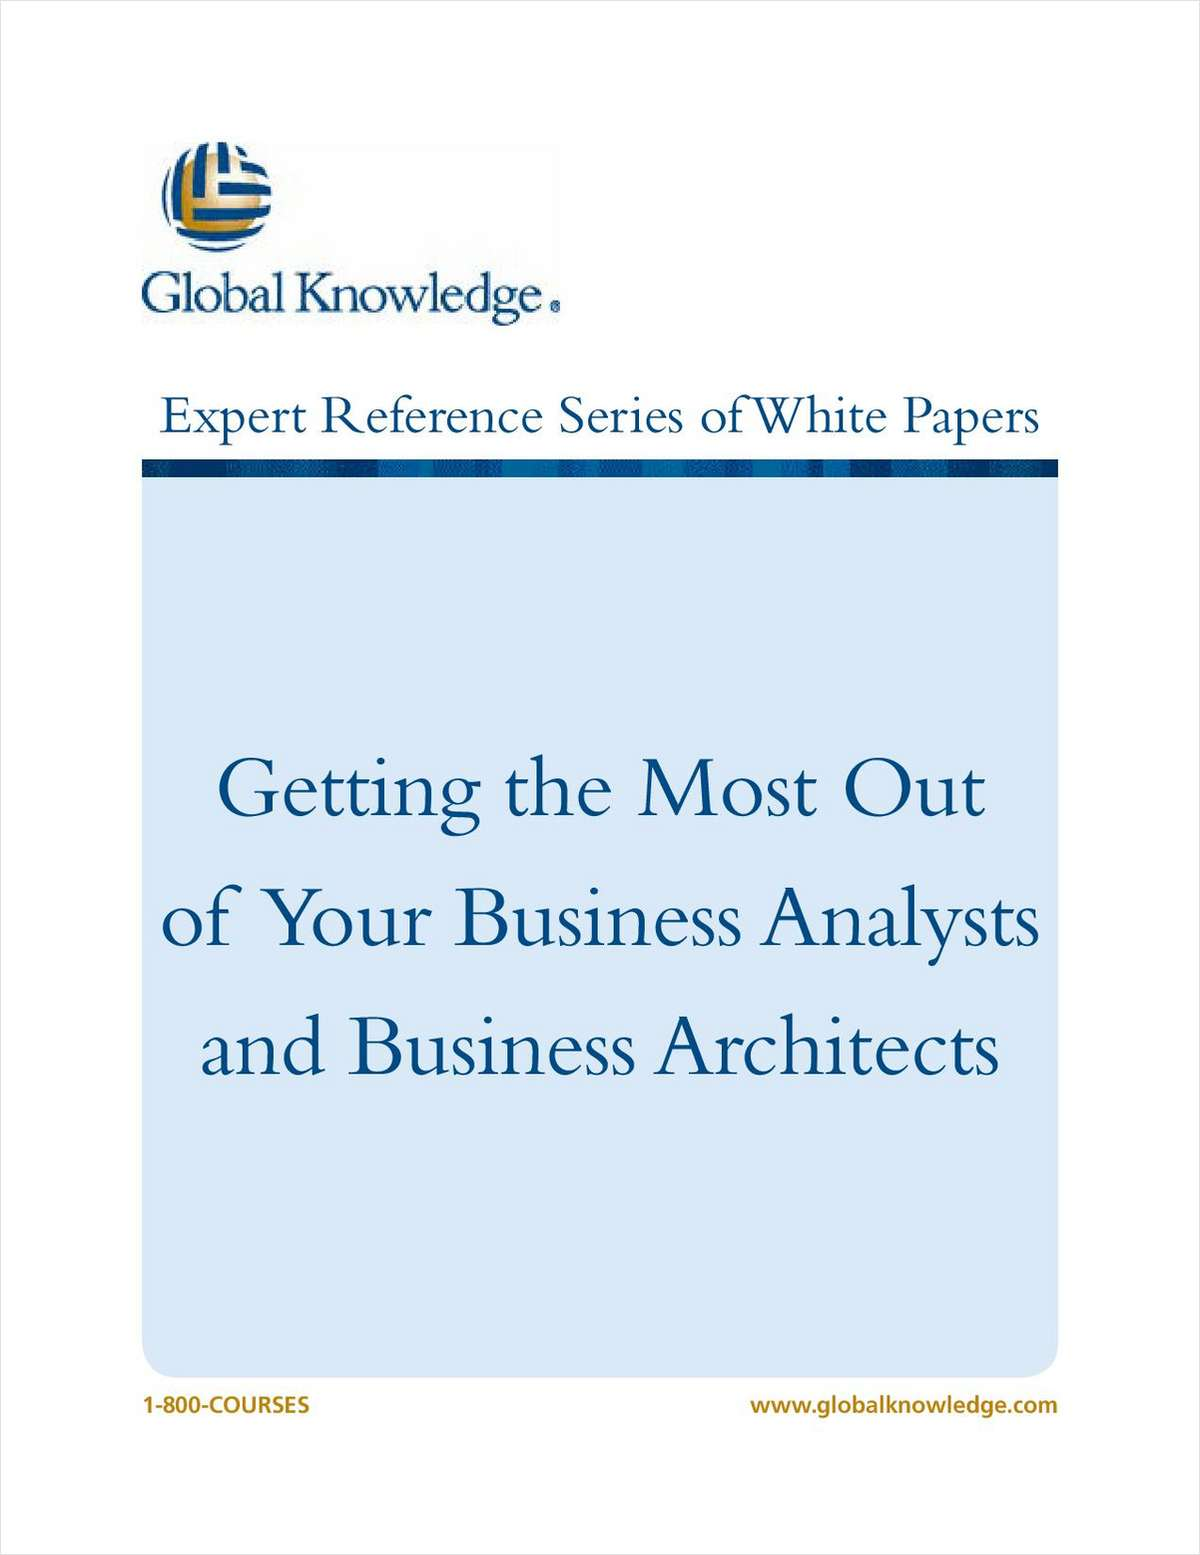 Getting the Most Out of Your Business Analysts and Business Architects